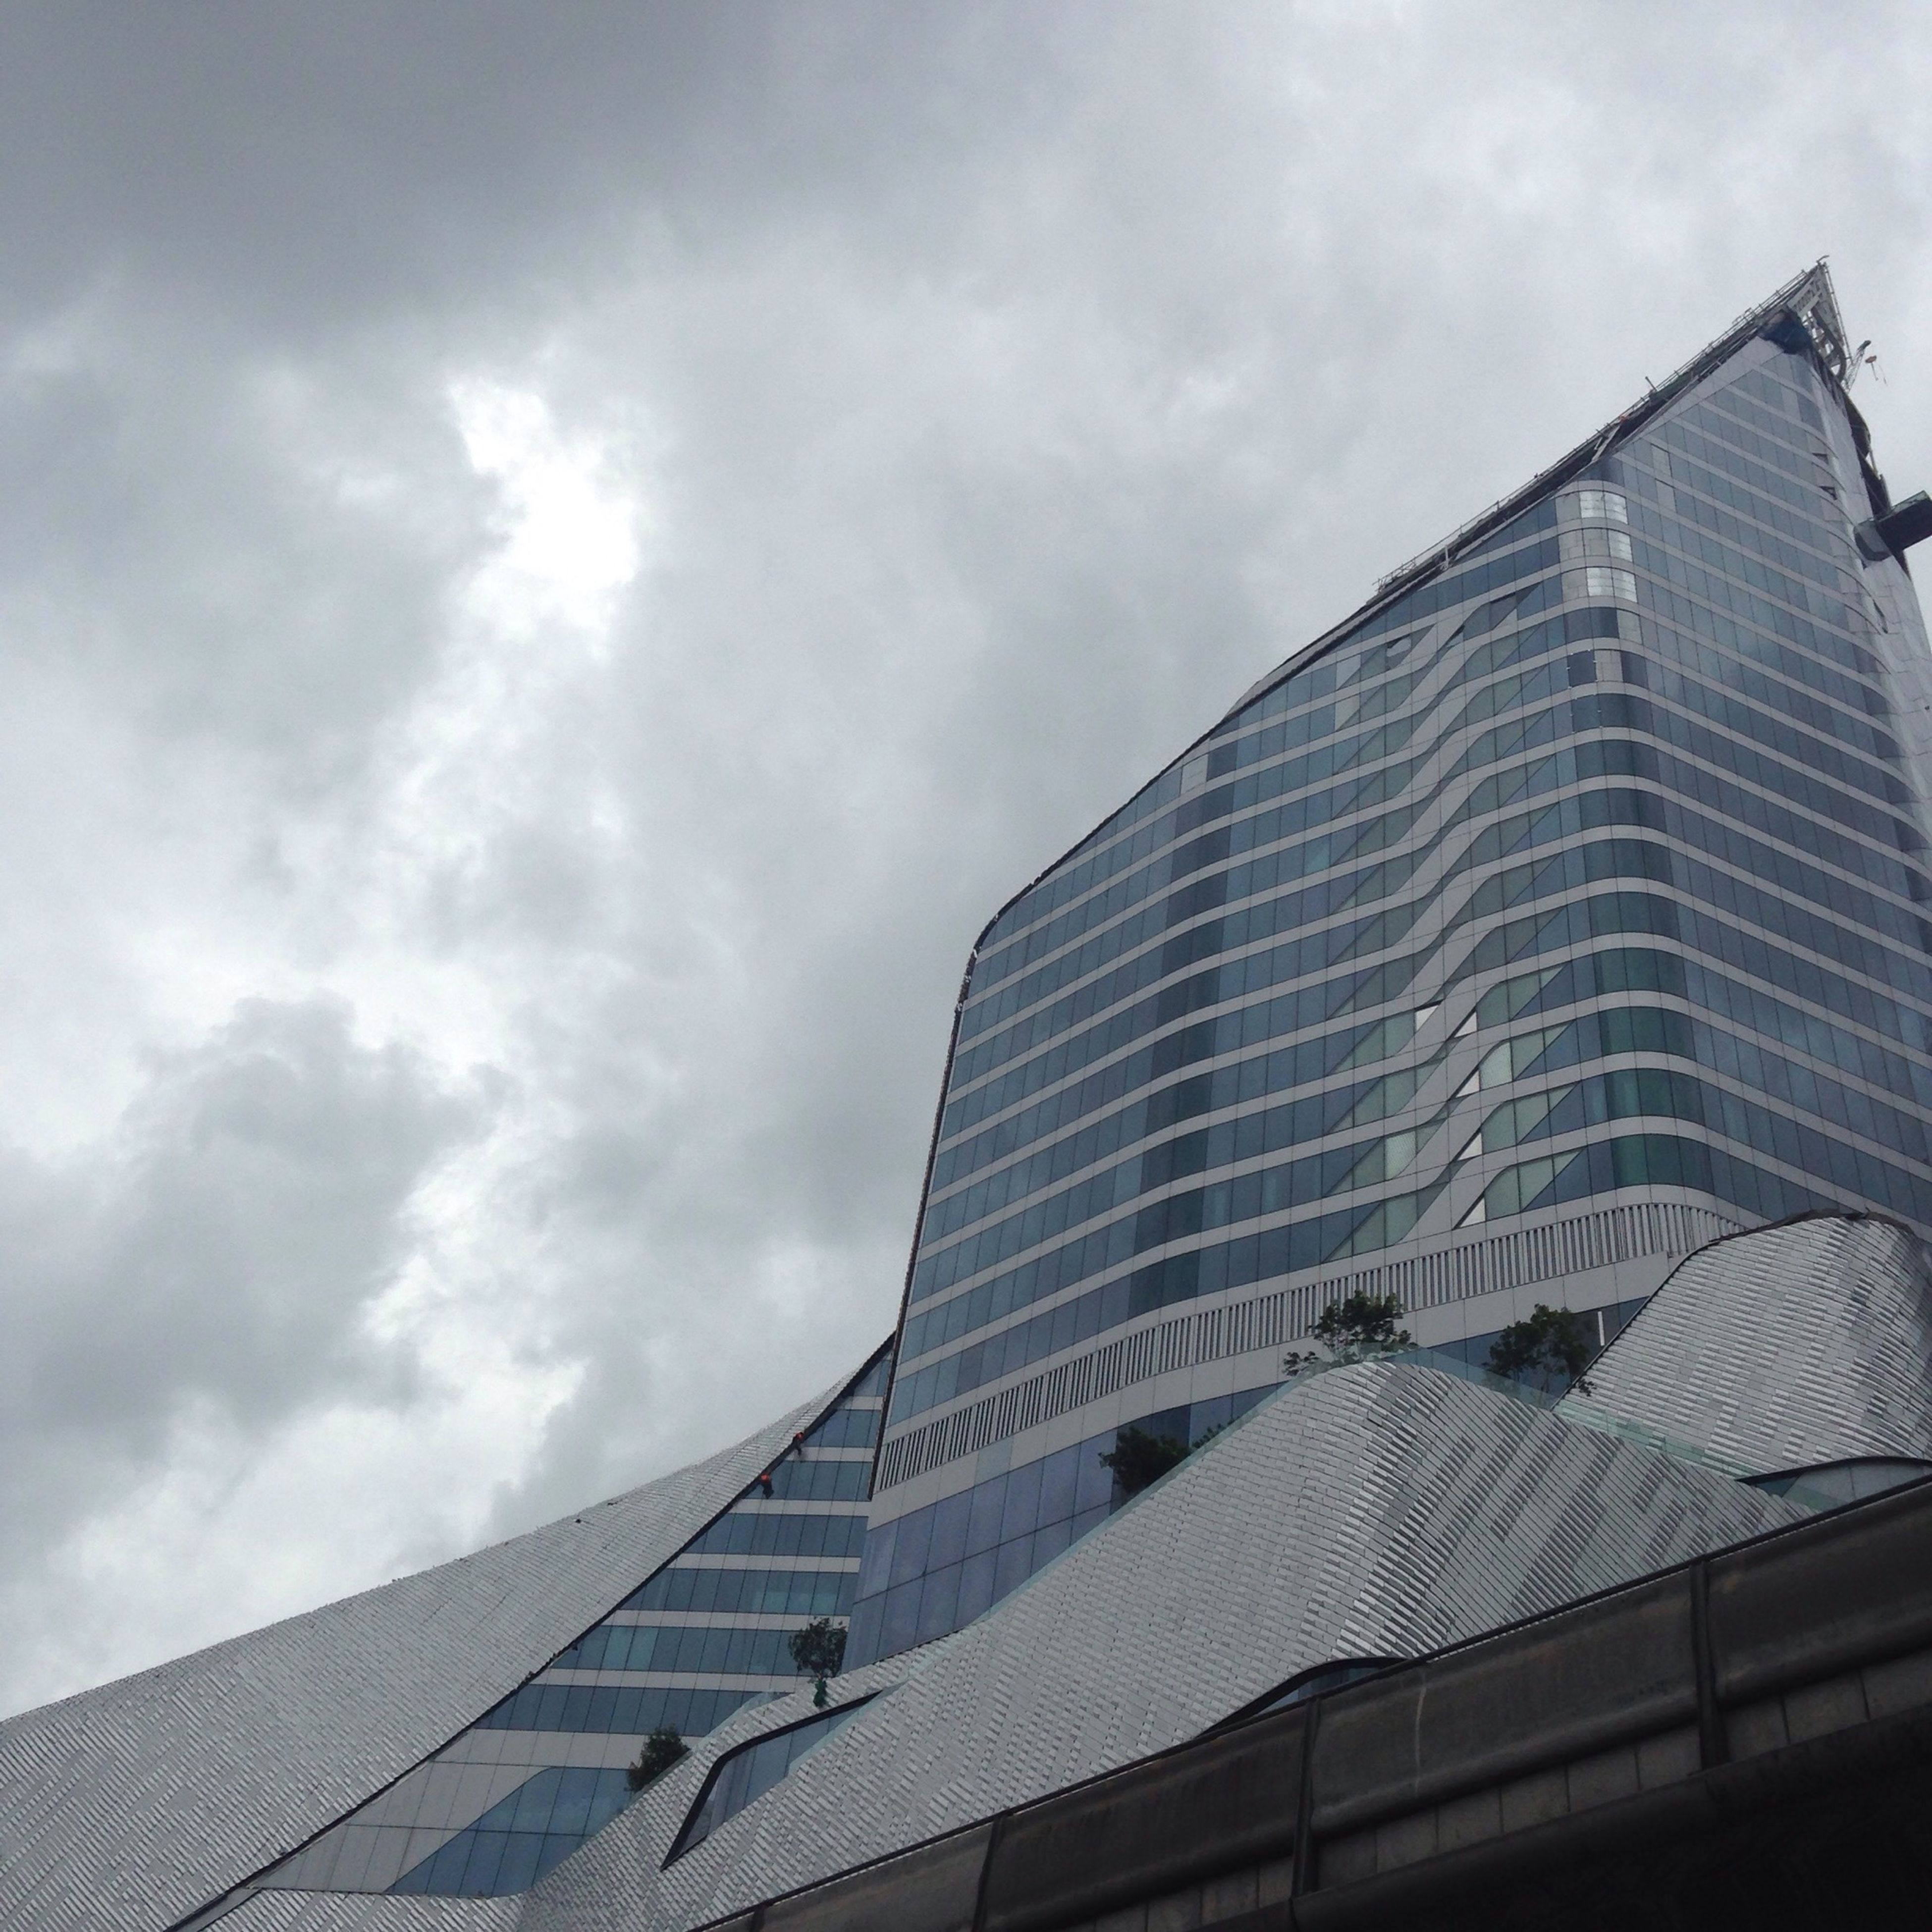 building exterior, architecture, built structure, sky, low angle view, city, cloud - sky, building, cloudy, modern, office building, cloud, skyscraper, residential building, day, roof, tower, outdoors, tall - high, residential structure